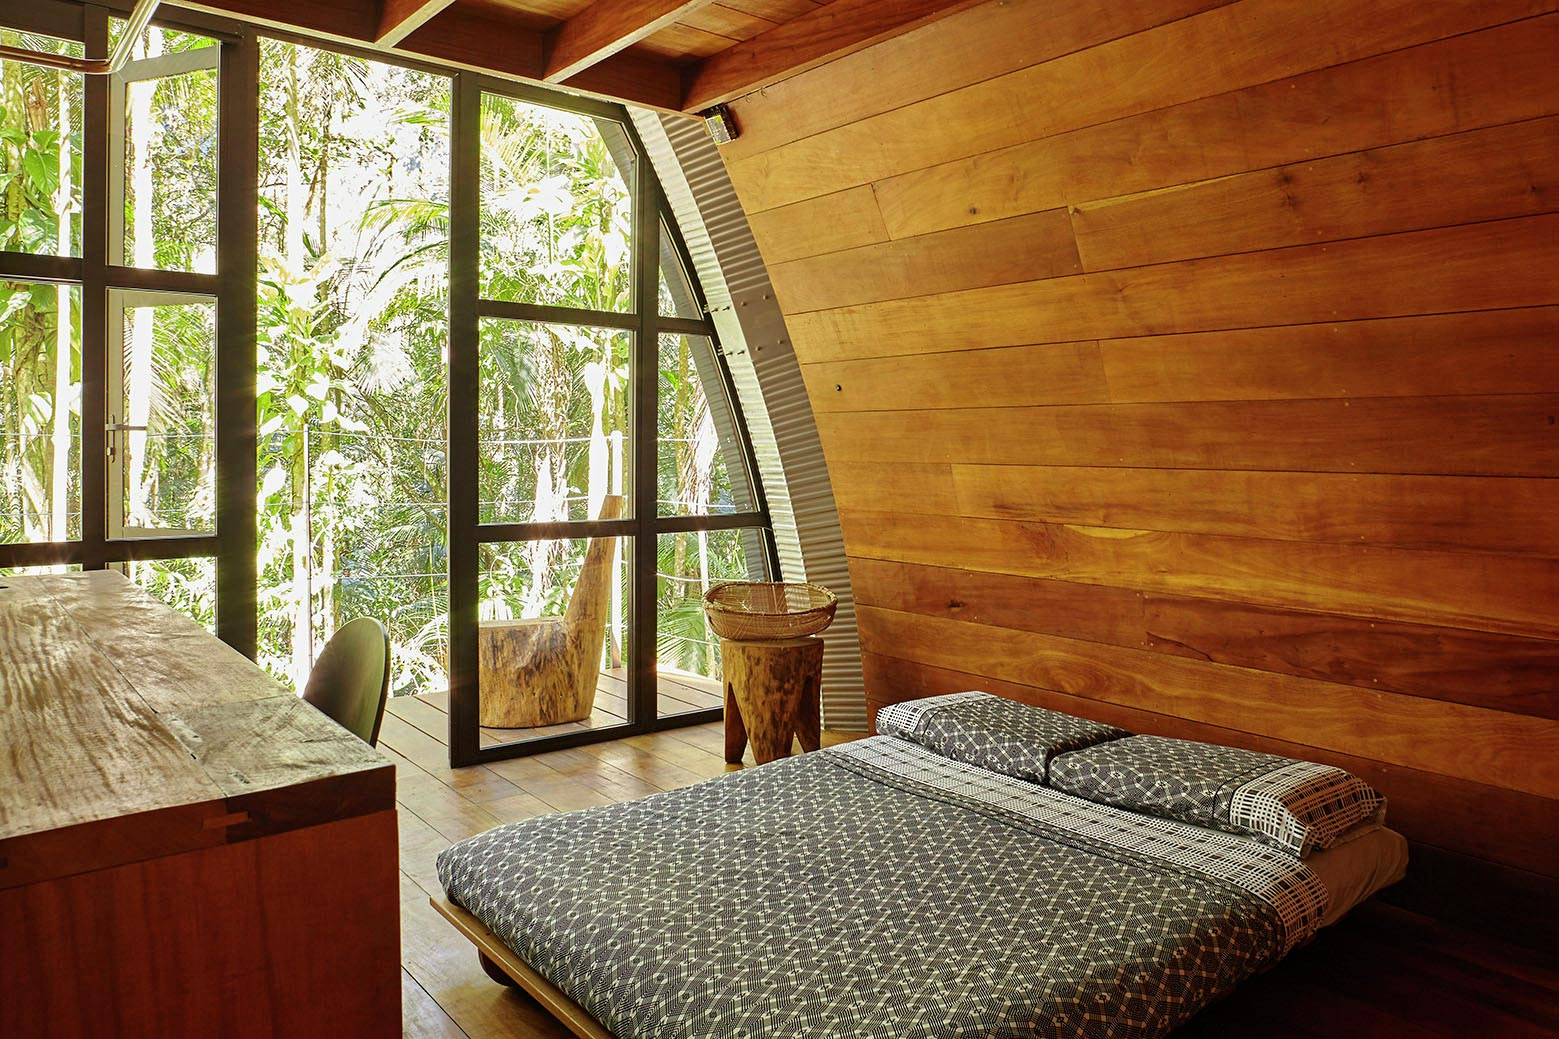 ARCA-home-in-the-middle-of-the-Brazilian-Atlantic-Forest-by-Atelier-Marko-Brajovic-12